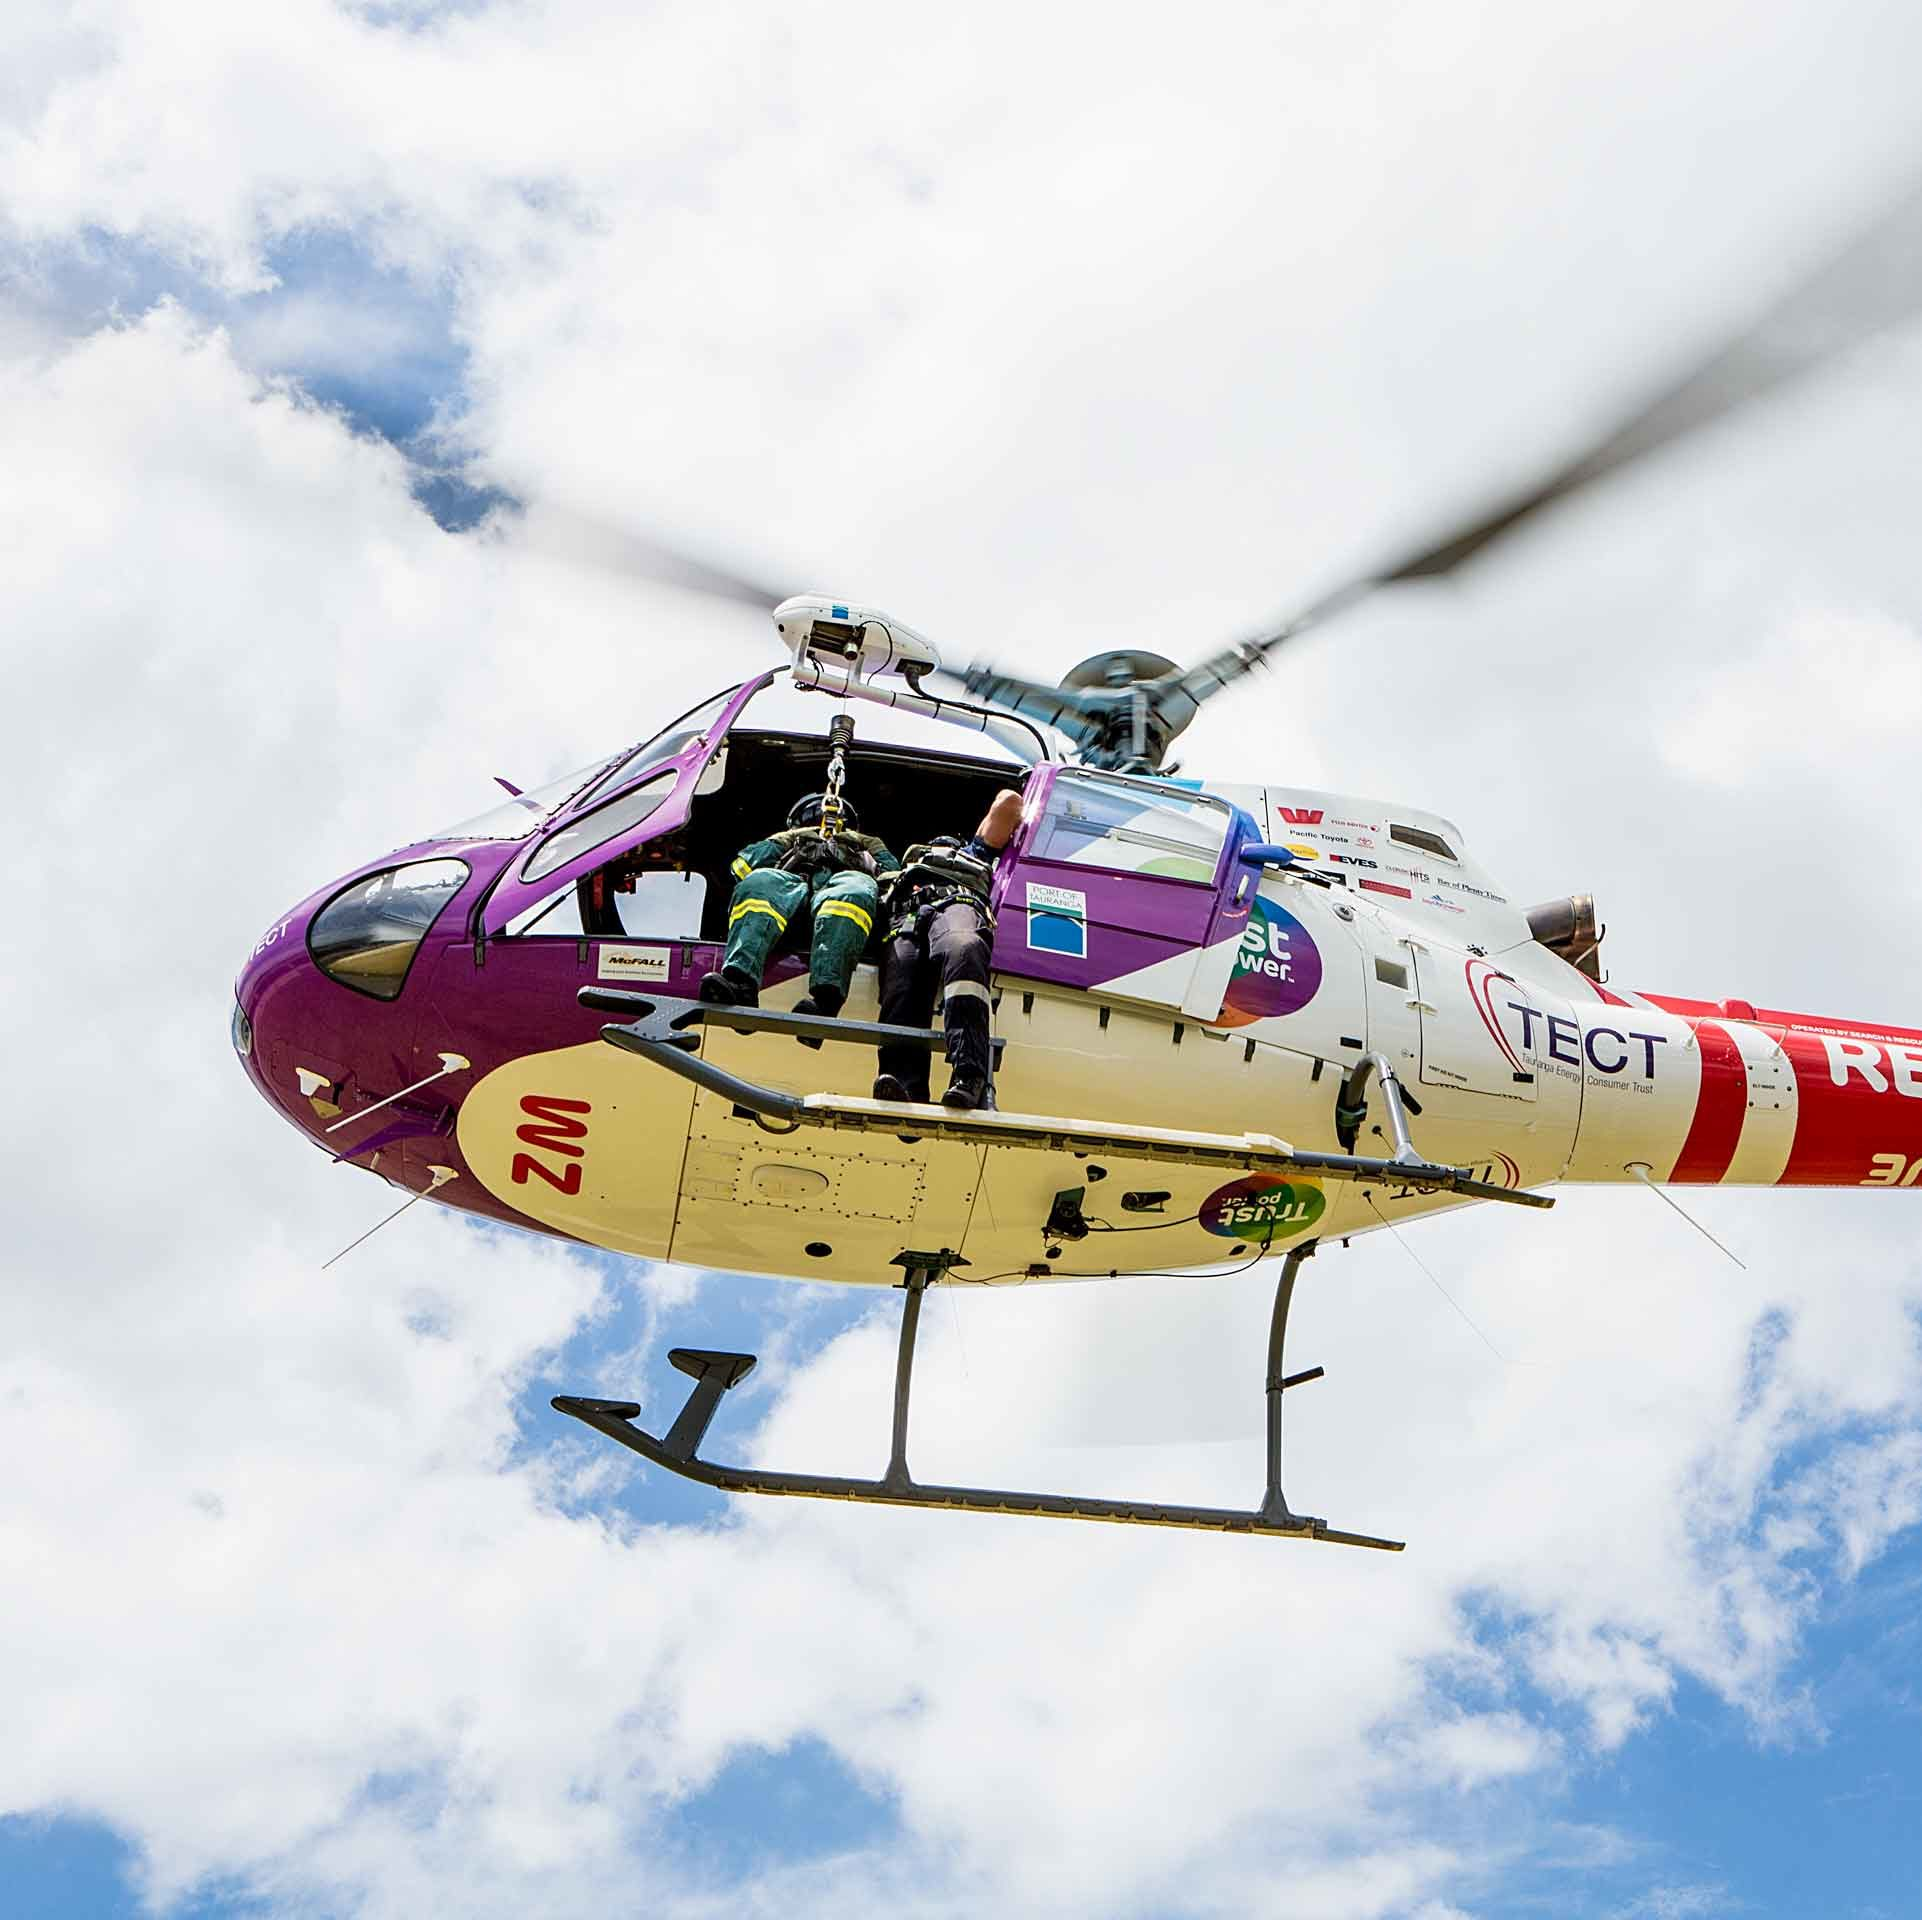 Support the Trustpower TECT Rescue Helicopter